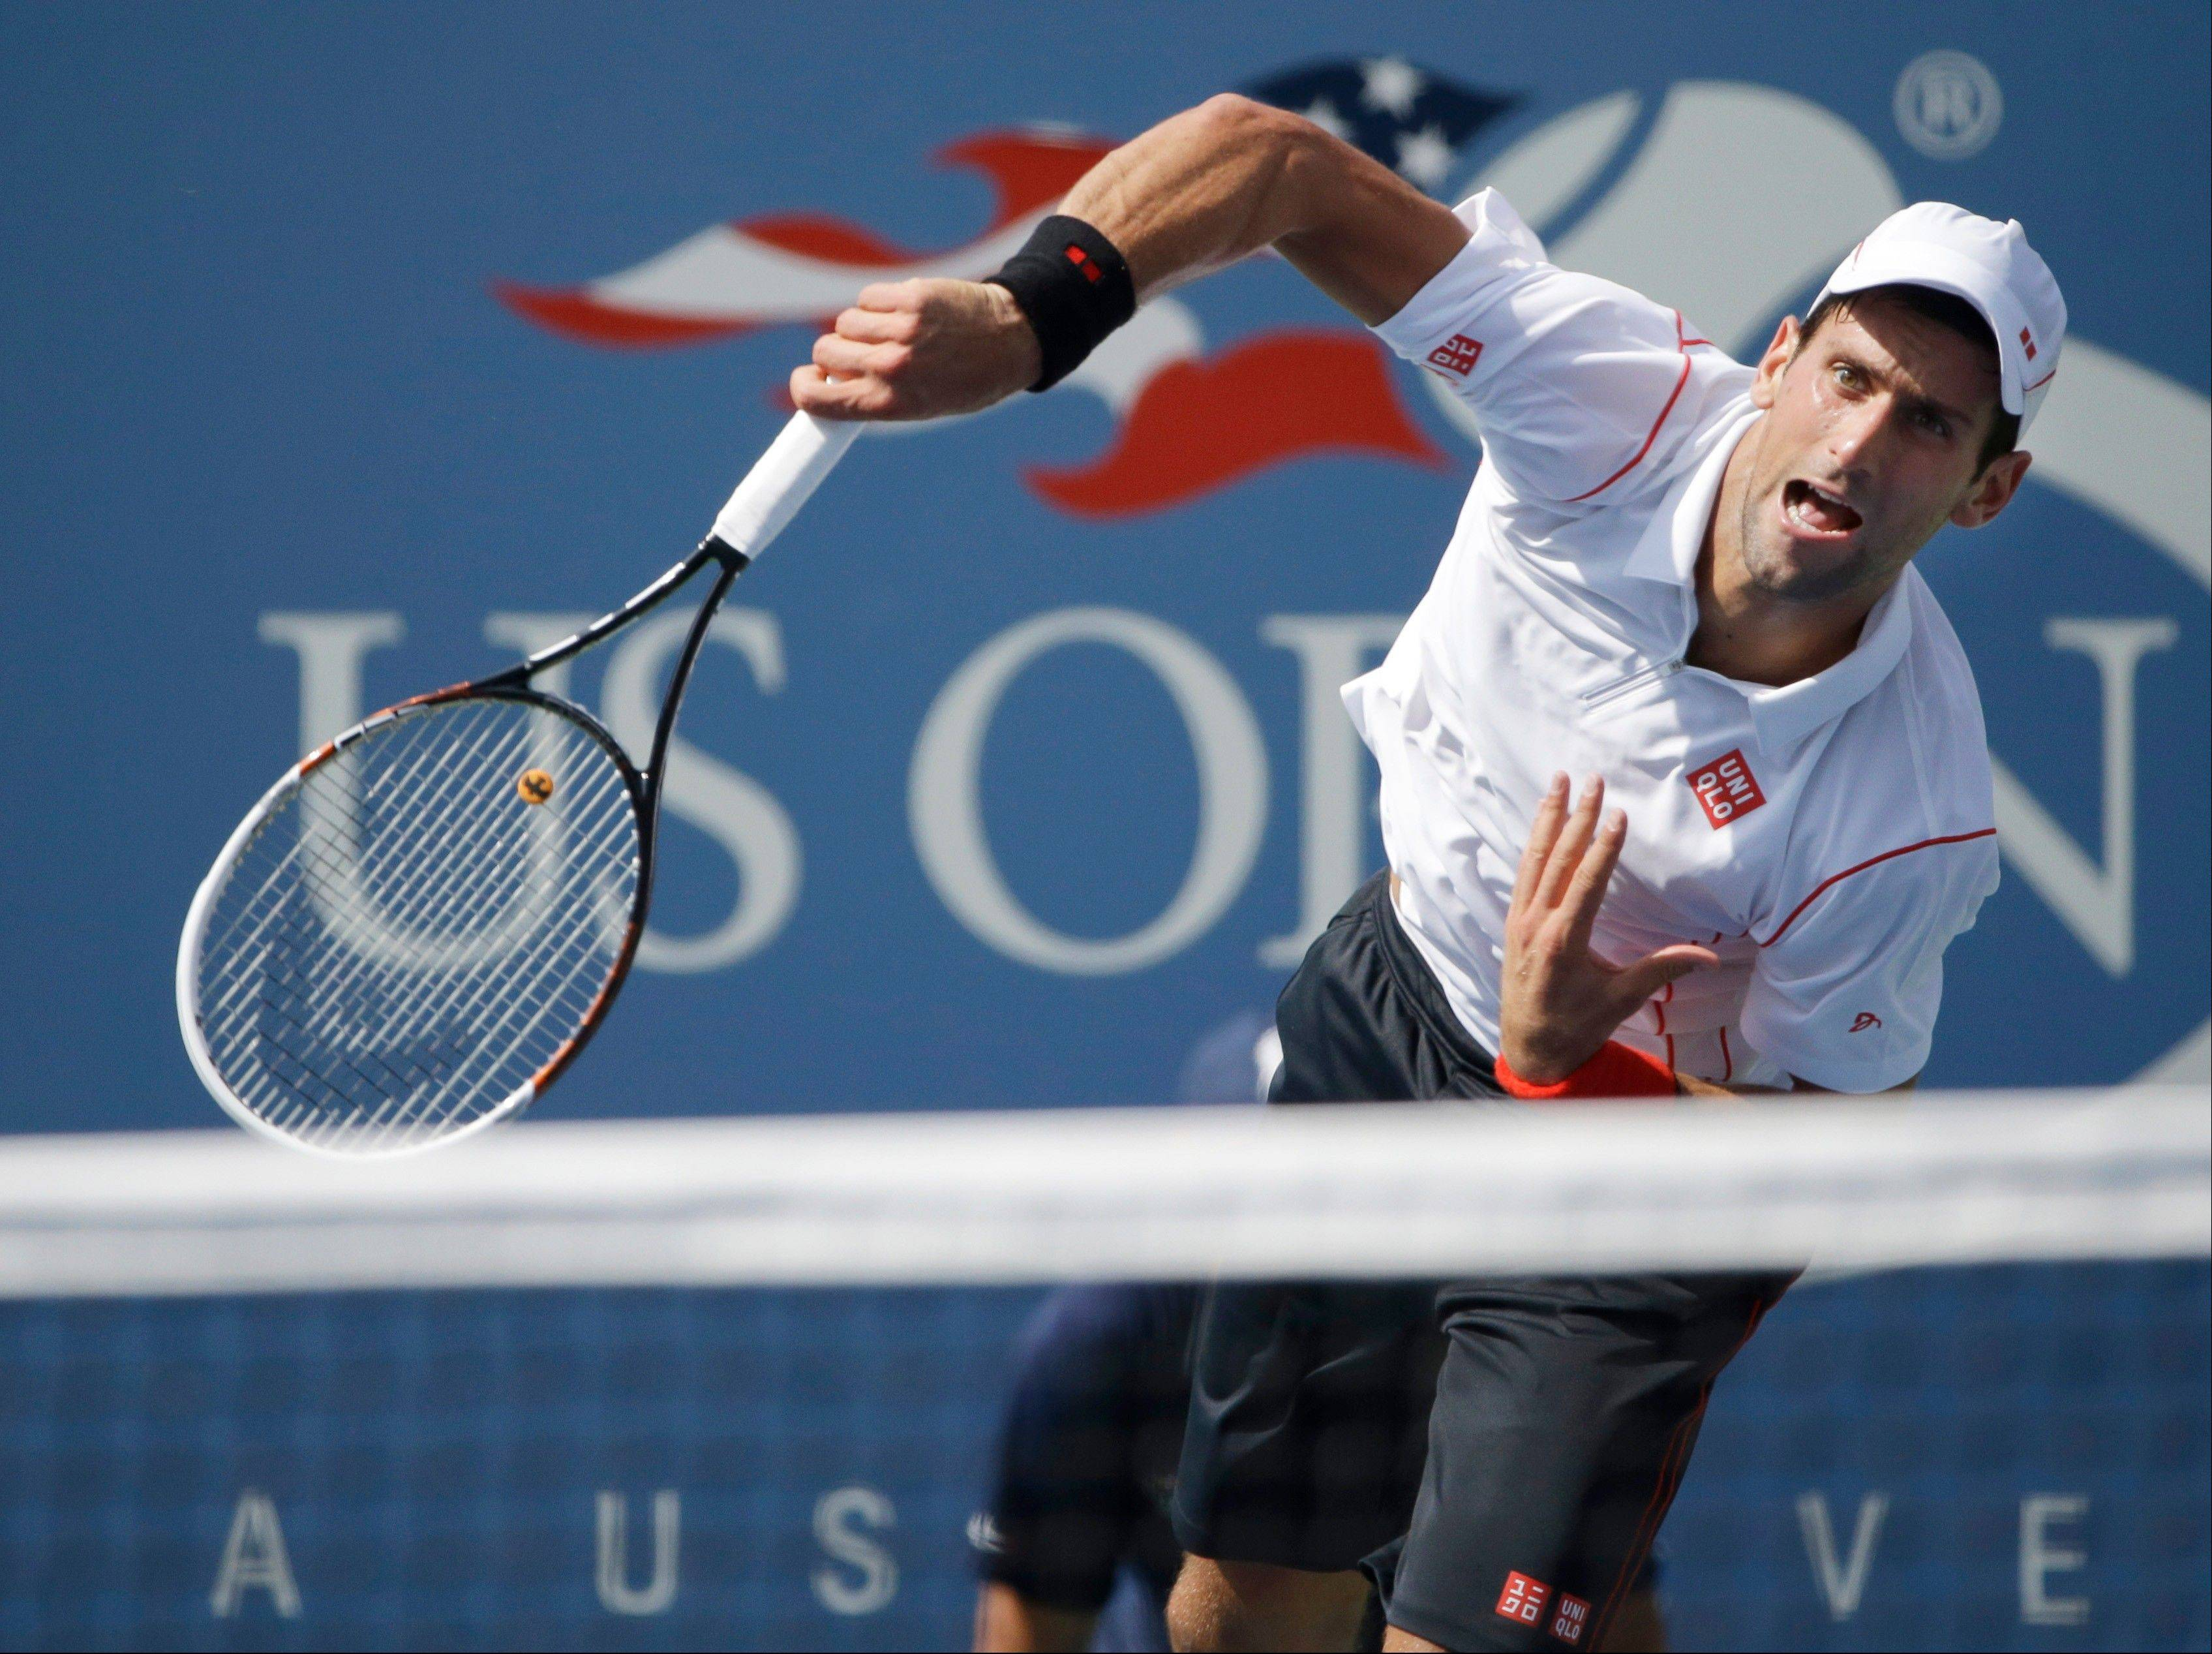 Novak Djokovic serves against Benjamin Becker during the second round of the U.S. Open on Friday in New York.